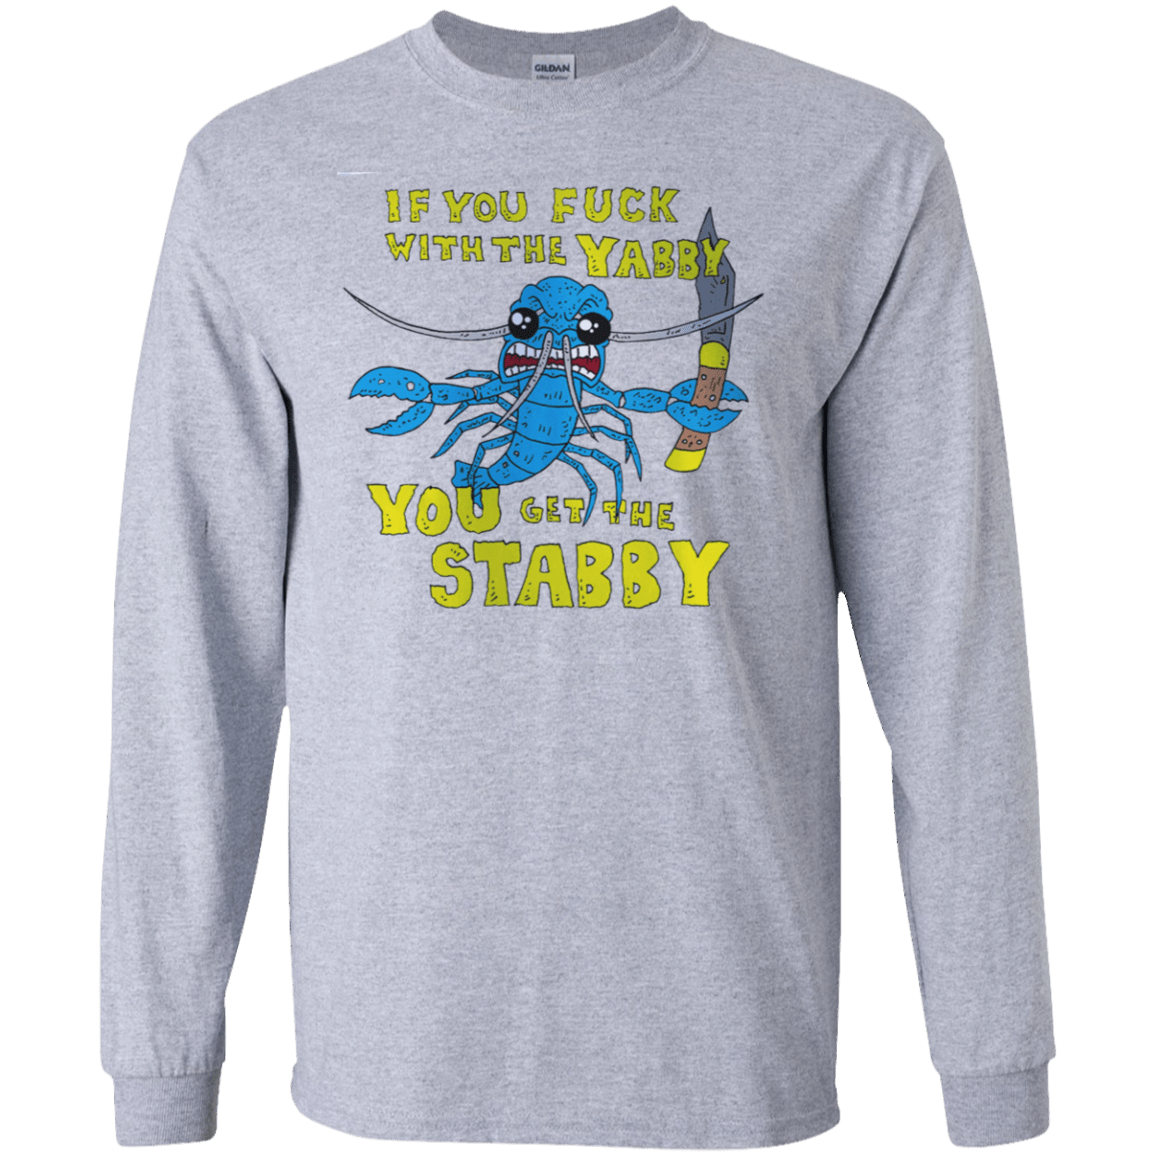 If You Fuck With The Yabby You Get The Stabby 30-188-72983910-335 - Tee Ript